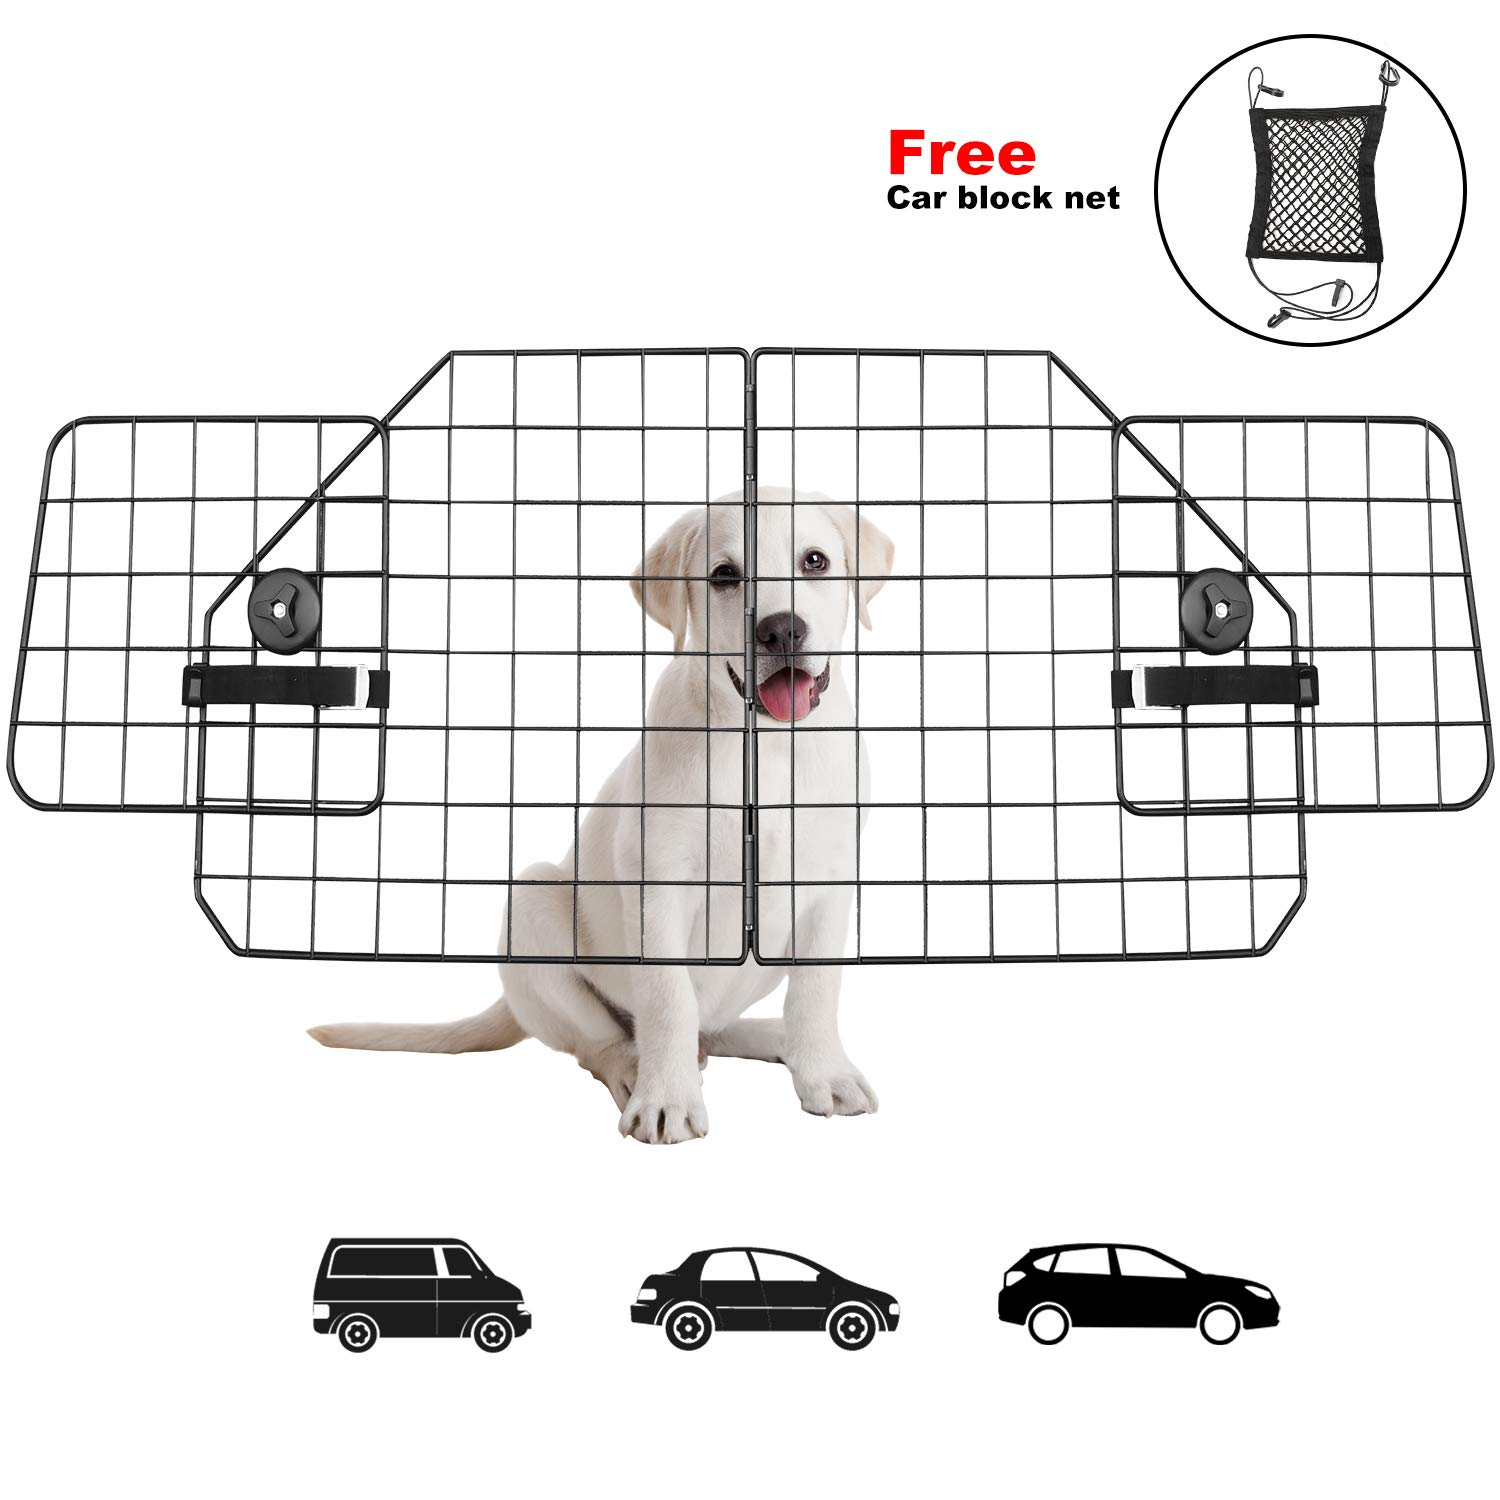 Dog Car Barriers,Pet Car Barrier Heavy Duty Wire Adjustable Dog Barrier with Front Seat Mesh Pet Barrier Net Organizer,The Perfect Dog Dividers for SUV,Cars,Vehicles by Urban Deco